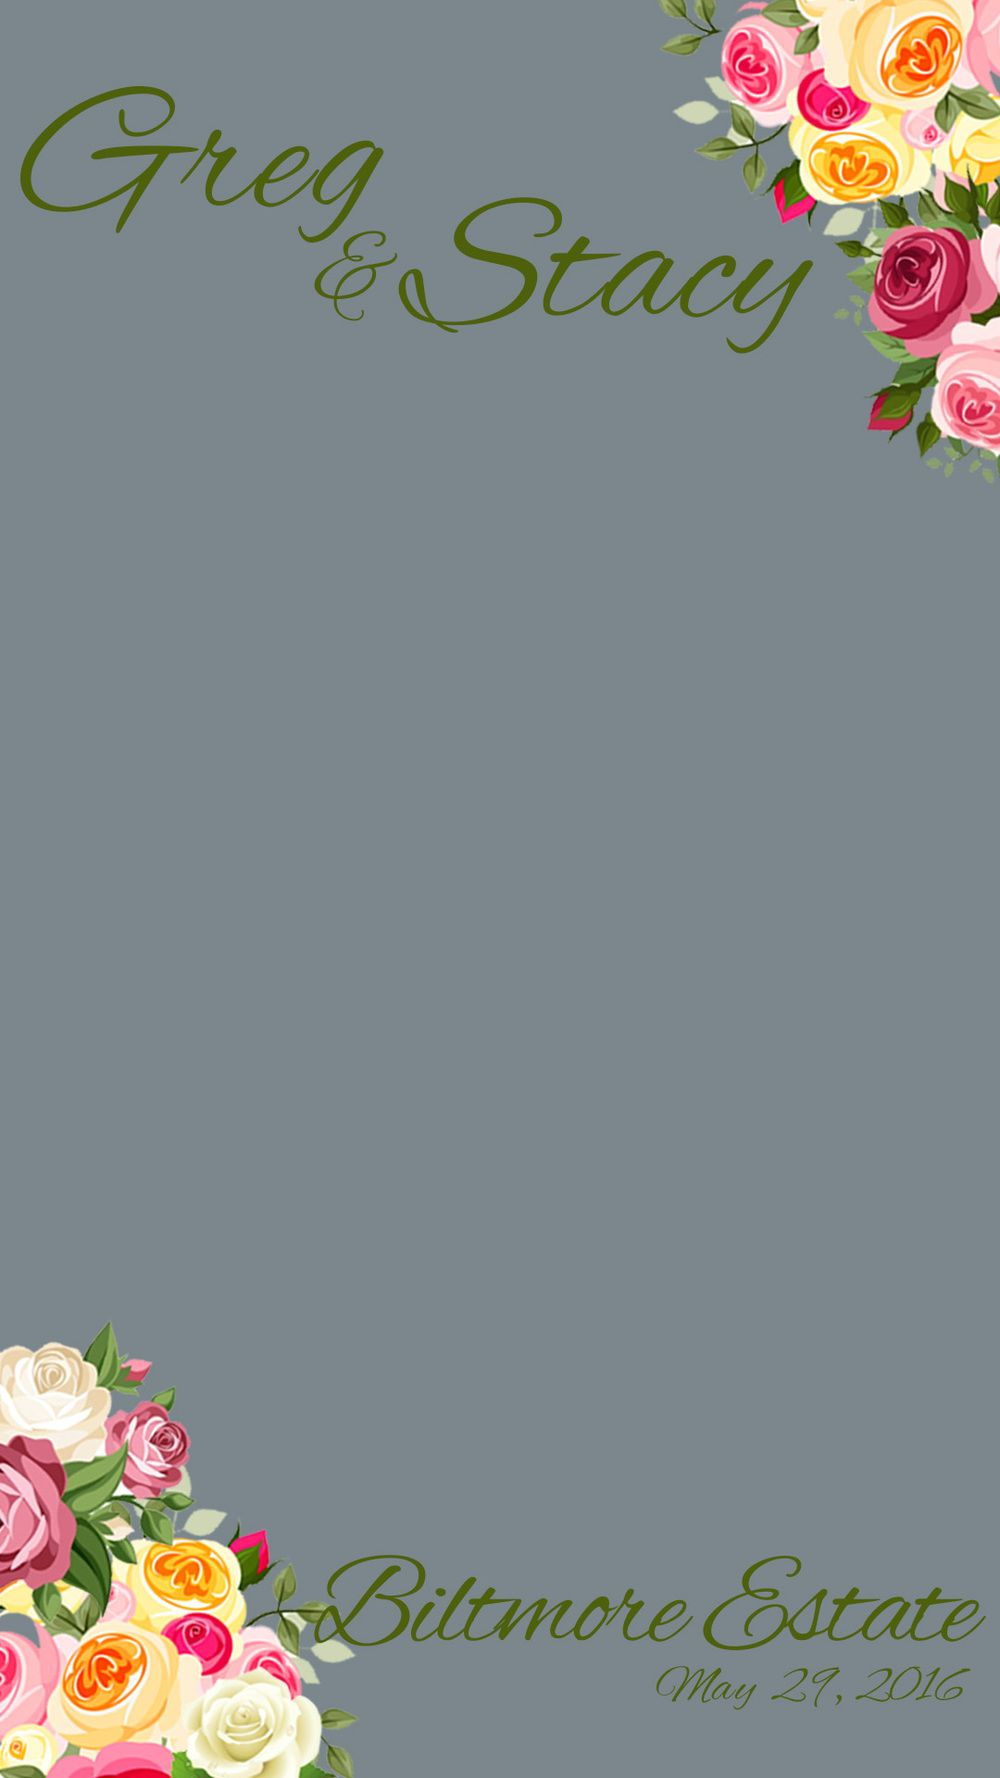 free wedding borders for invitations%0A